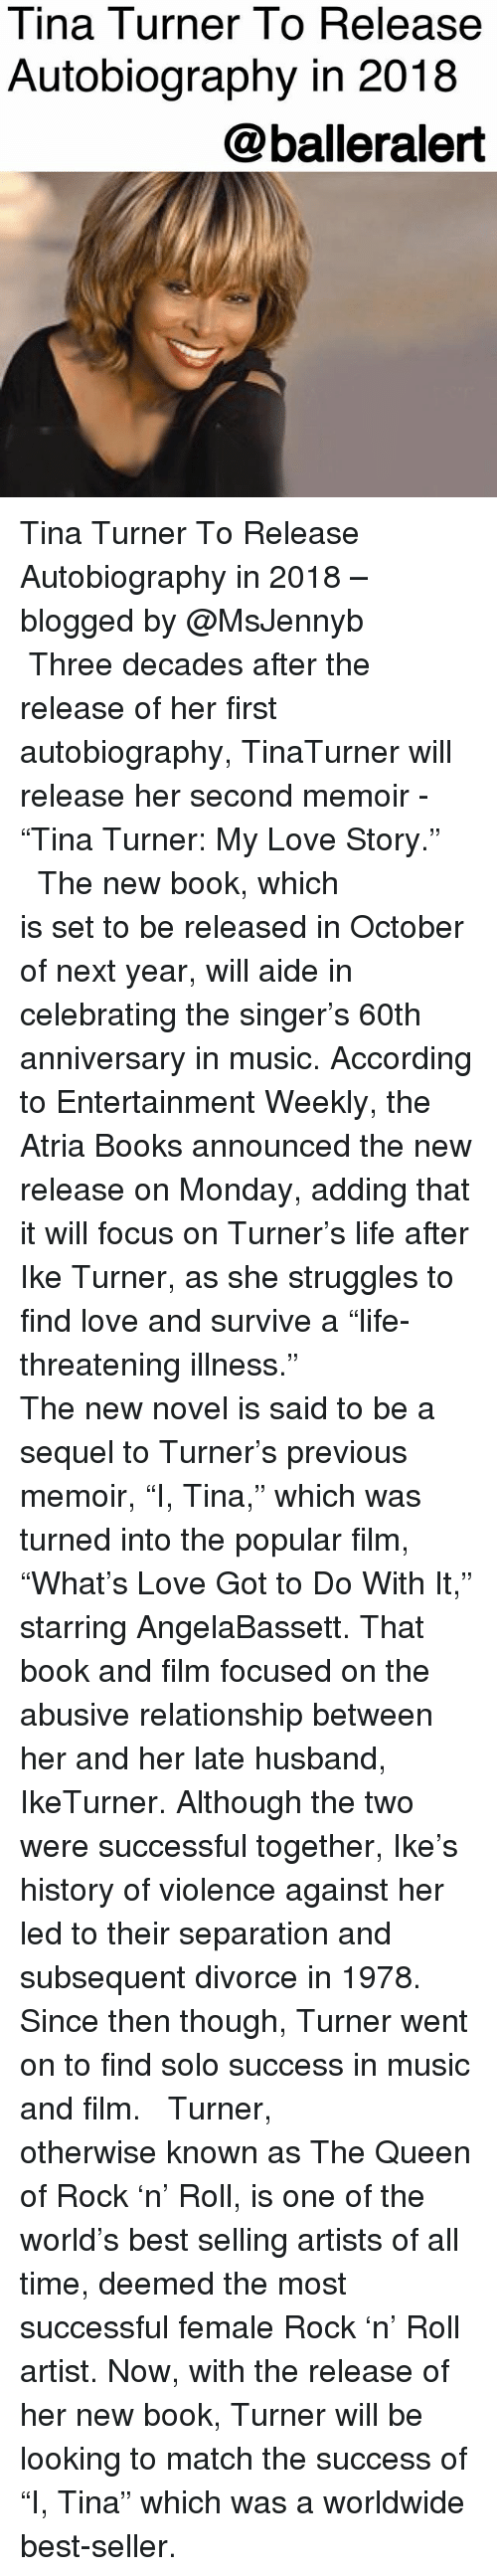 """Autobiography: Tina Turner To Release  Autobiography in 2018  @balleralert Tina Turner To Release Autobiography in 2018 – blogged by @MsJennyb ⠀⠀⠀⠀⠀⠀⠀ ⠀⠀⠀⠀⠀⠀⠀ Three decades after the release of her first autobiography, TinaTurner will release her second memoir - """"Tina Turner: My Love Story."""" ⠀⠀⠀⠀⠀⠀⠀ ⠀⠀⠀⠀⠀⠀⠀ The new book, which is set to be released in October of next year, will aide in celebrating the singer's 60th anniversary in music. According to Entertainment Weekly, the Atria Books announced the new release on Monday, adding that it will focus on Turner's life after Ike Turner, as she struggles to find love and survive a """"life-threatening illness."""" ⠀⠀⠀⠀⠀⠀⠀ ⠀⠀⠀⠀⠀⠀⠀ The new novel is said to be a sequel to Turner's previous memoir, """"I, Tina,"""" which was turned into the popular film, """"What's Love Got to Do With It,"""" starring AngelaBassett. That book and film focused on the abusive relationship between her and her late husband, IkeTurner. Although the two were successful together, Ike's history of violence against her led to their separation and subsequent divorce in 1978. Since then though, Turner went on to find solo success in music and film. ⠀⠀⠀⠀⠀⠀⠀ ⠀⠀⠀⠀⠀⠀⠀ Turner, otherwise known as The Queen of Rock 'n' Roll, is one of the world's best selling artists of all time, deemed the most successful female Rock 'n' Roll artist. Now, with the release of her new book, Turner will be looking to match the success of """"I, Tina"""" which was a worldwide best-seller."""